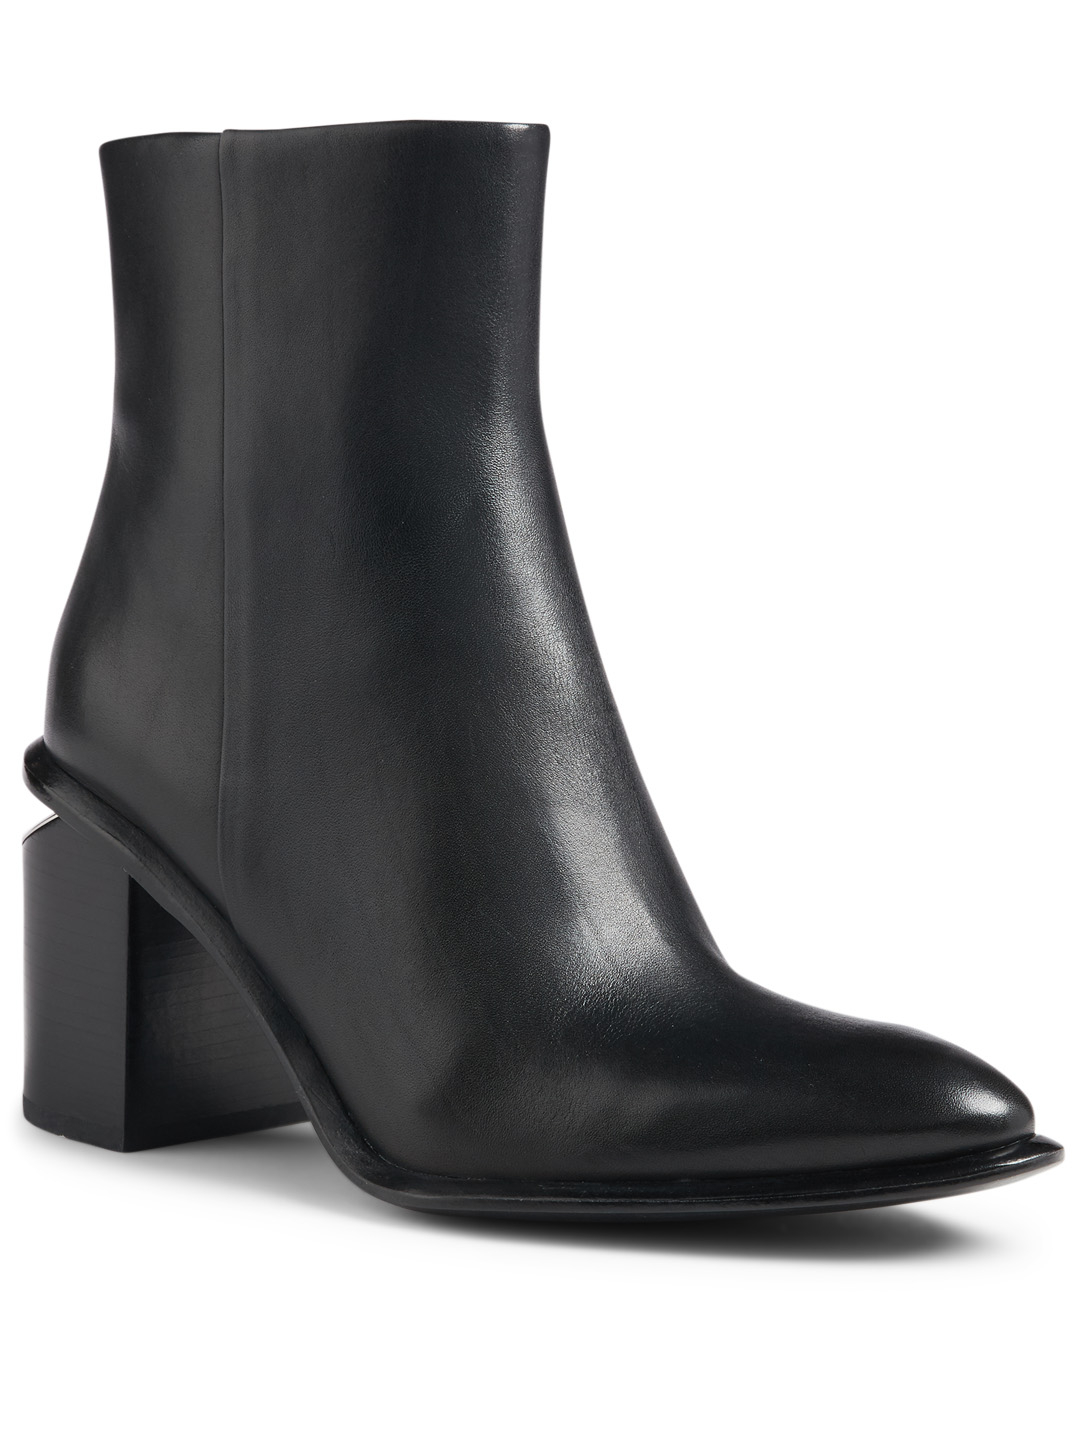 417f95ea700 ALEXANDER WANG Anna Leather Ankle Boots | Holt Renfrew